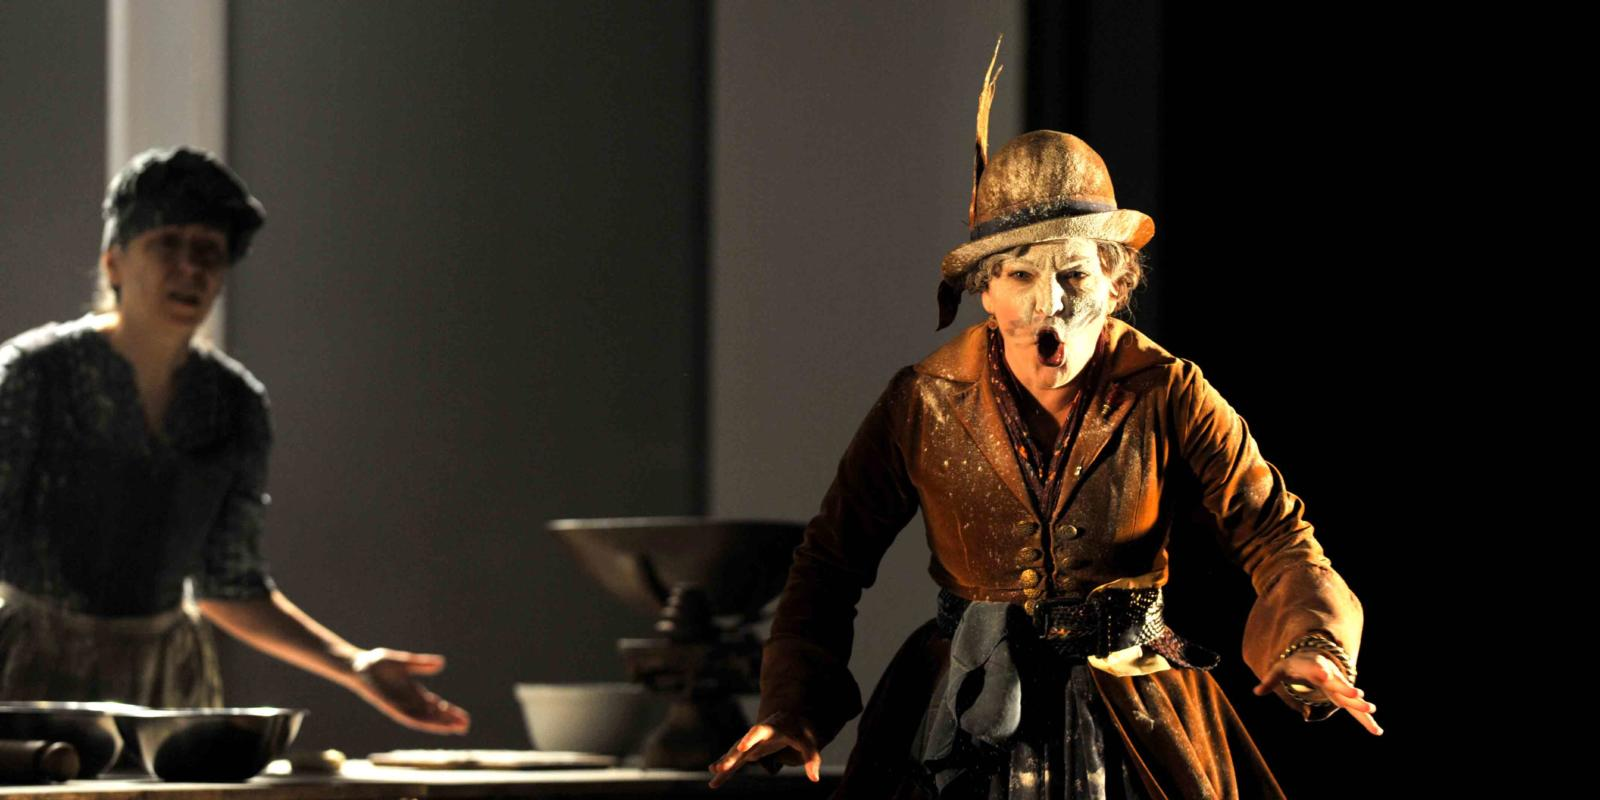 An image of Lucy Schaufer in Fiona Shaw's 2014 production of The Marriage of Figaro